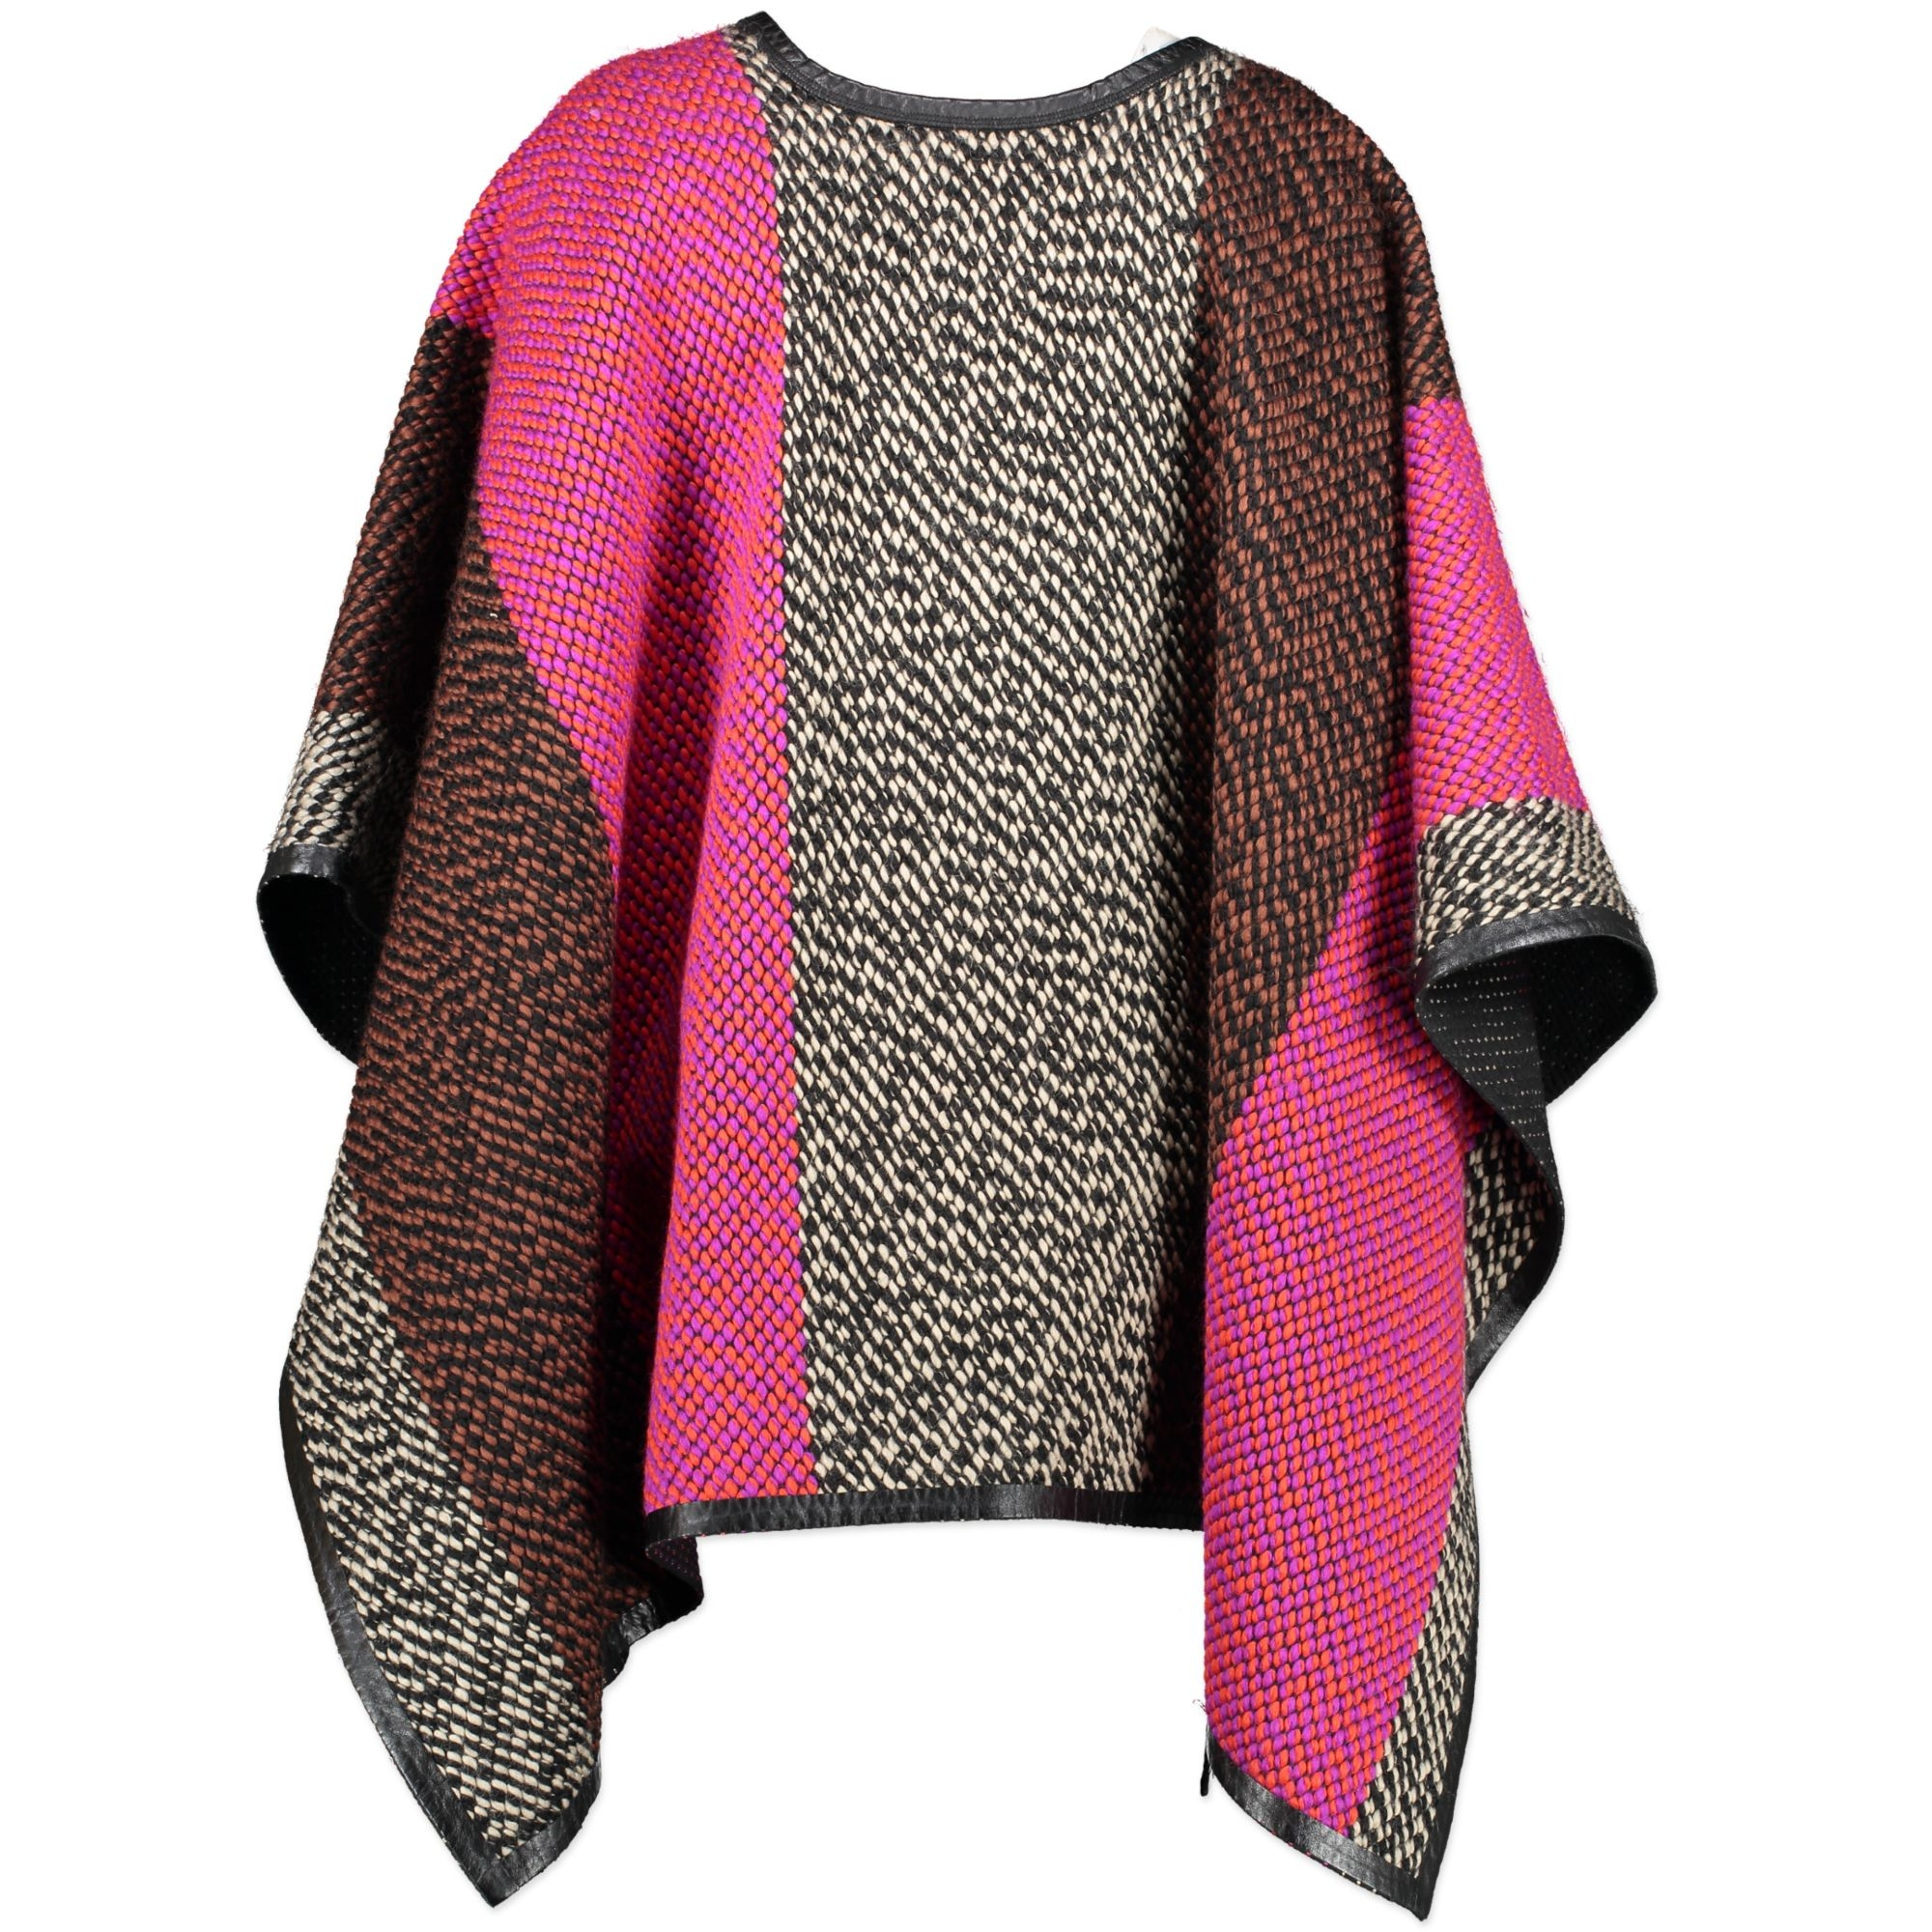 We buy and sell your authentic designer Fendi Wool Multicolor Cape - IT40 for the best price